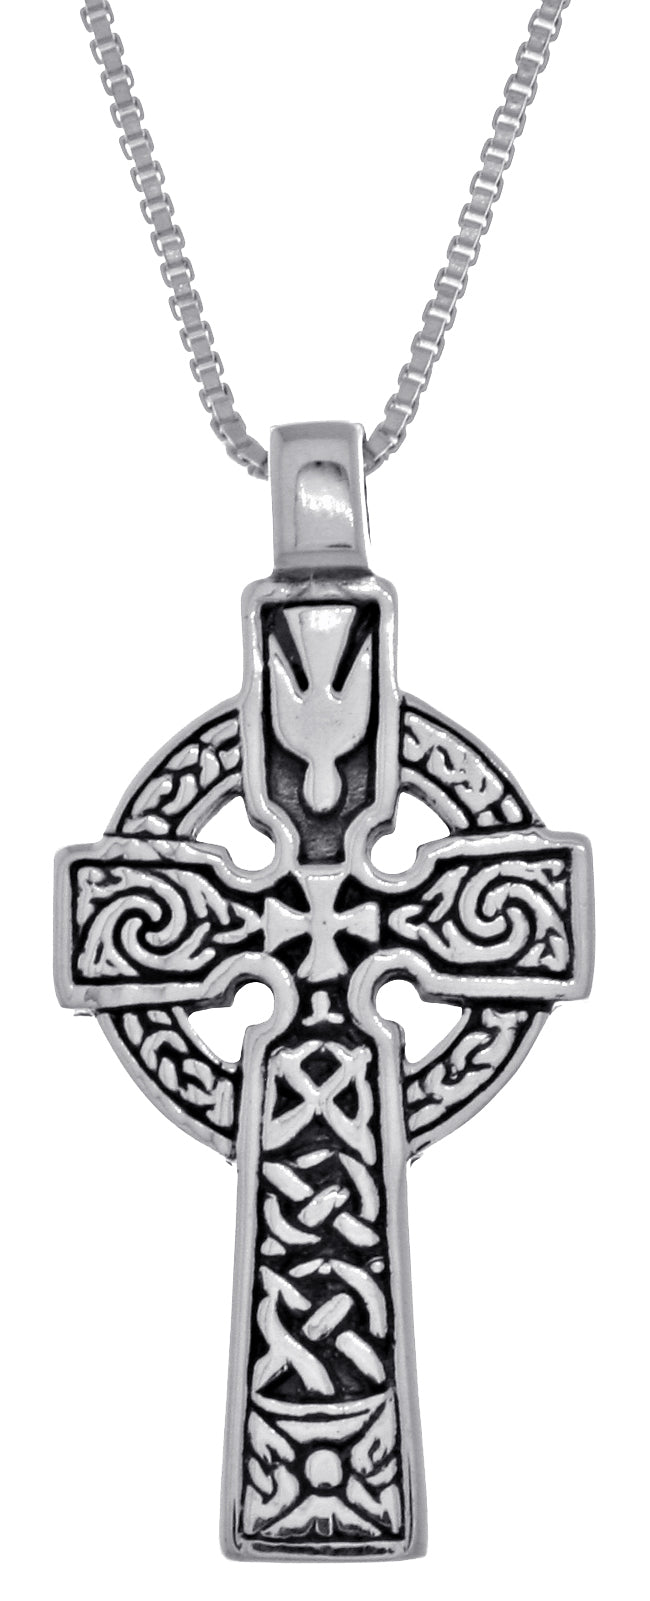 Jewelry Trends Sterling Silver Celtic Cross Double Sided Pendant on 18 Inch Box Chain Necklace